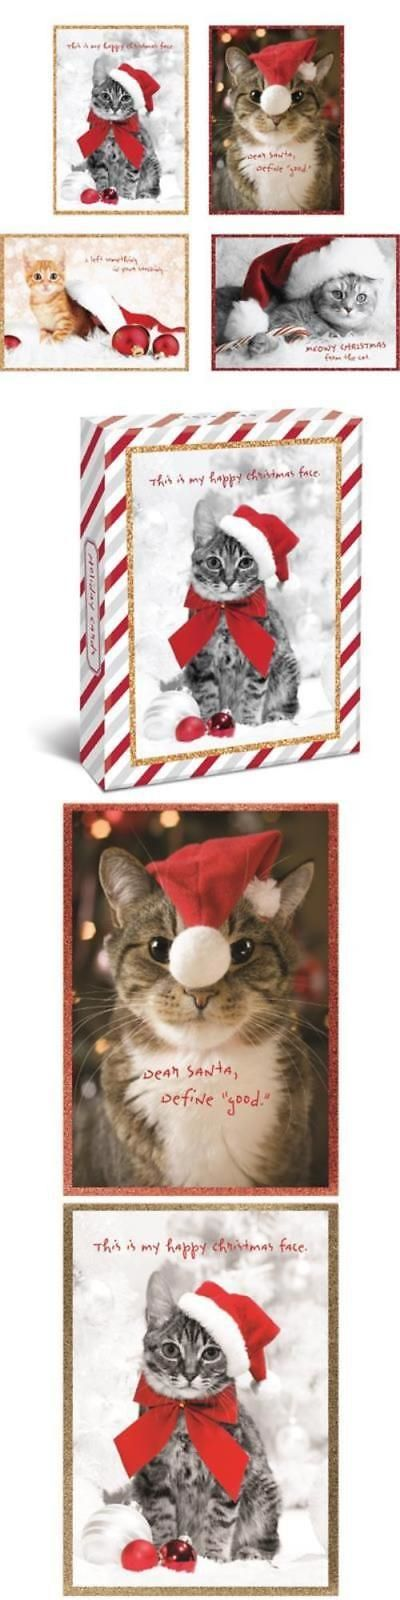 Cat Lover Products 117422 Holiday Cats Boxed 4 X 6 Christmas Cards